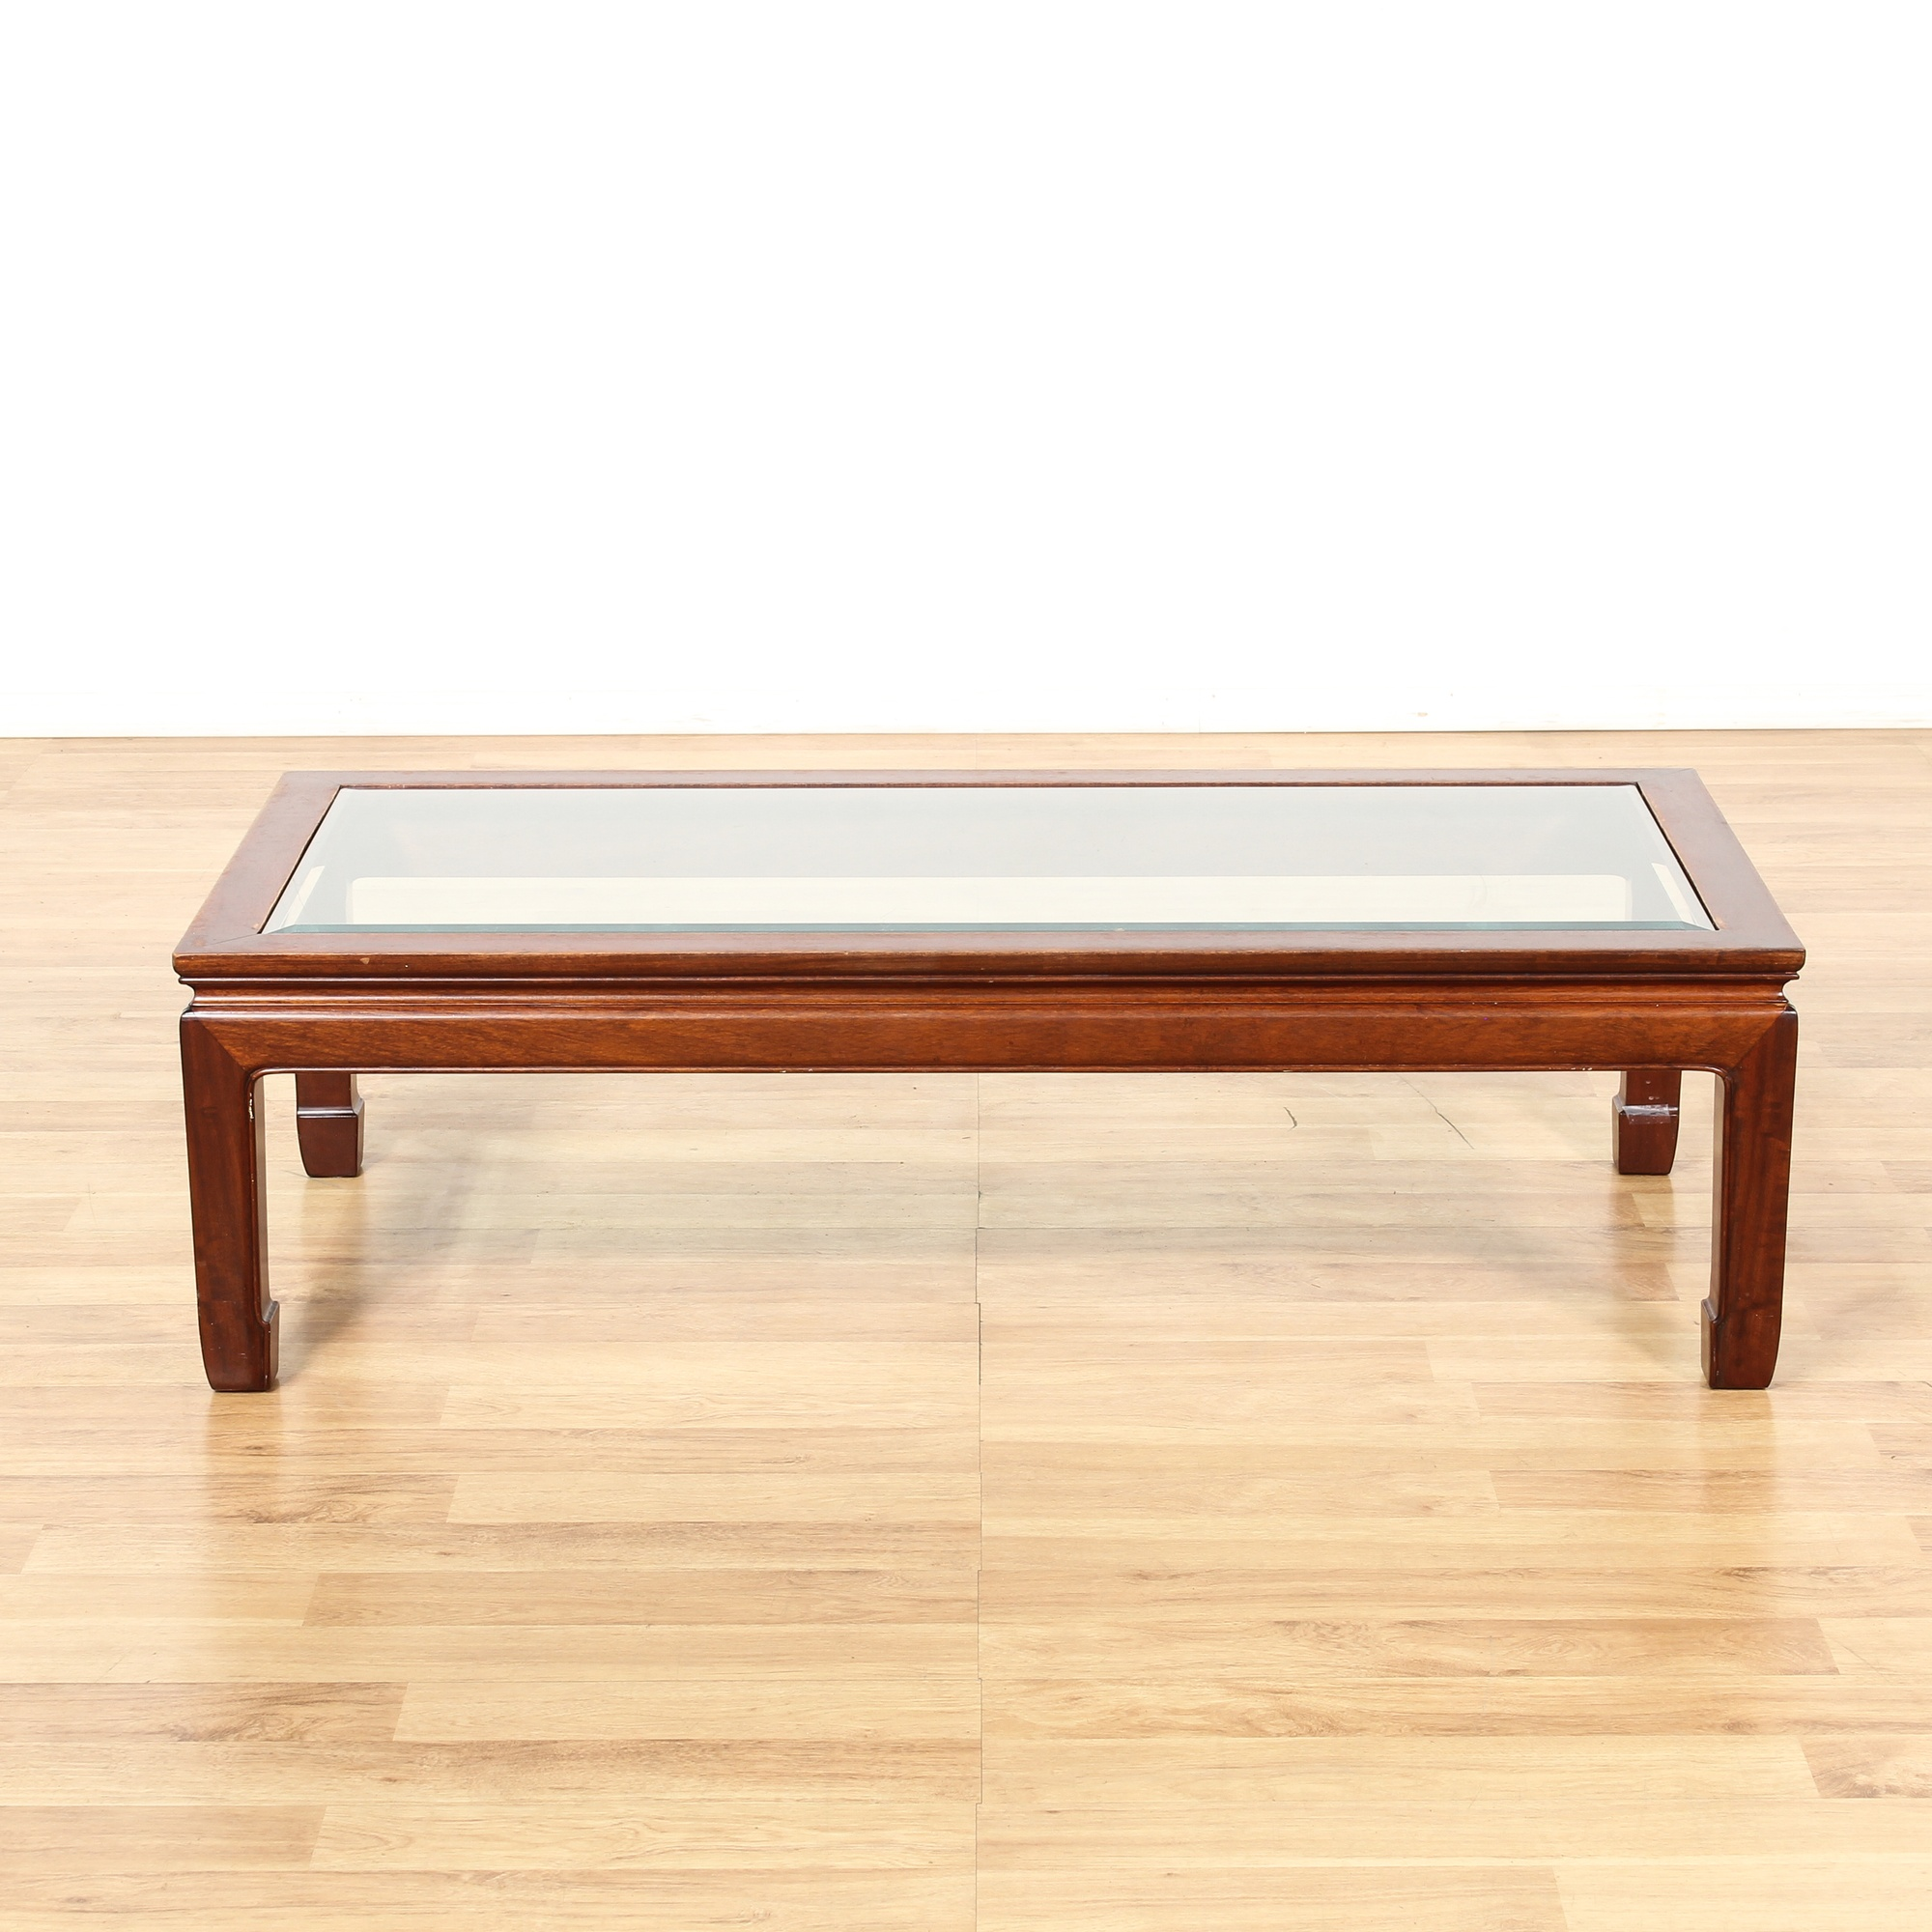 Chinese Chow Table Style Glass Insert Coffee Table Loveseat Vintage Furniture San Diego Los